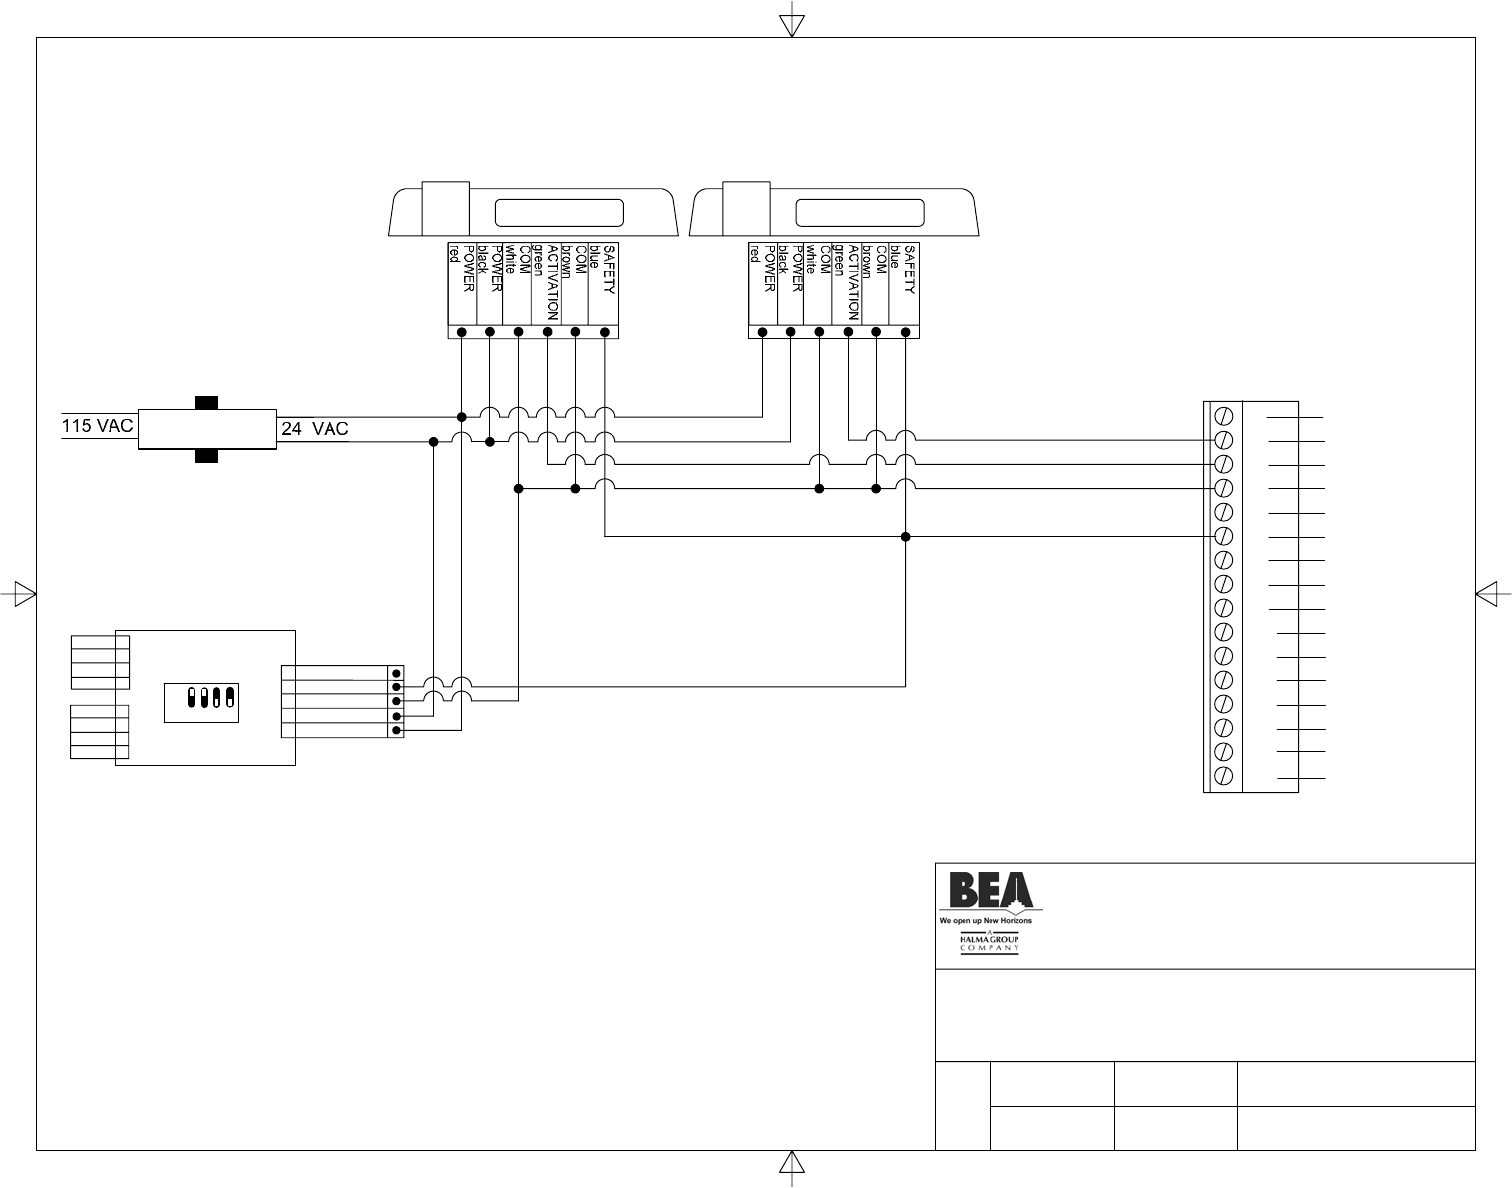 horton c4160 wiring diagram horton image wiring page 13 of bea switch c2150 user guide manualsonline com on horton c4160 wiring diagram